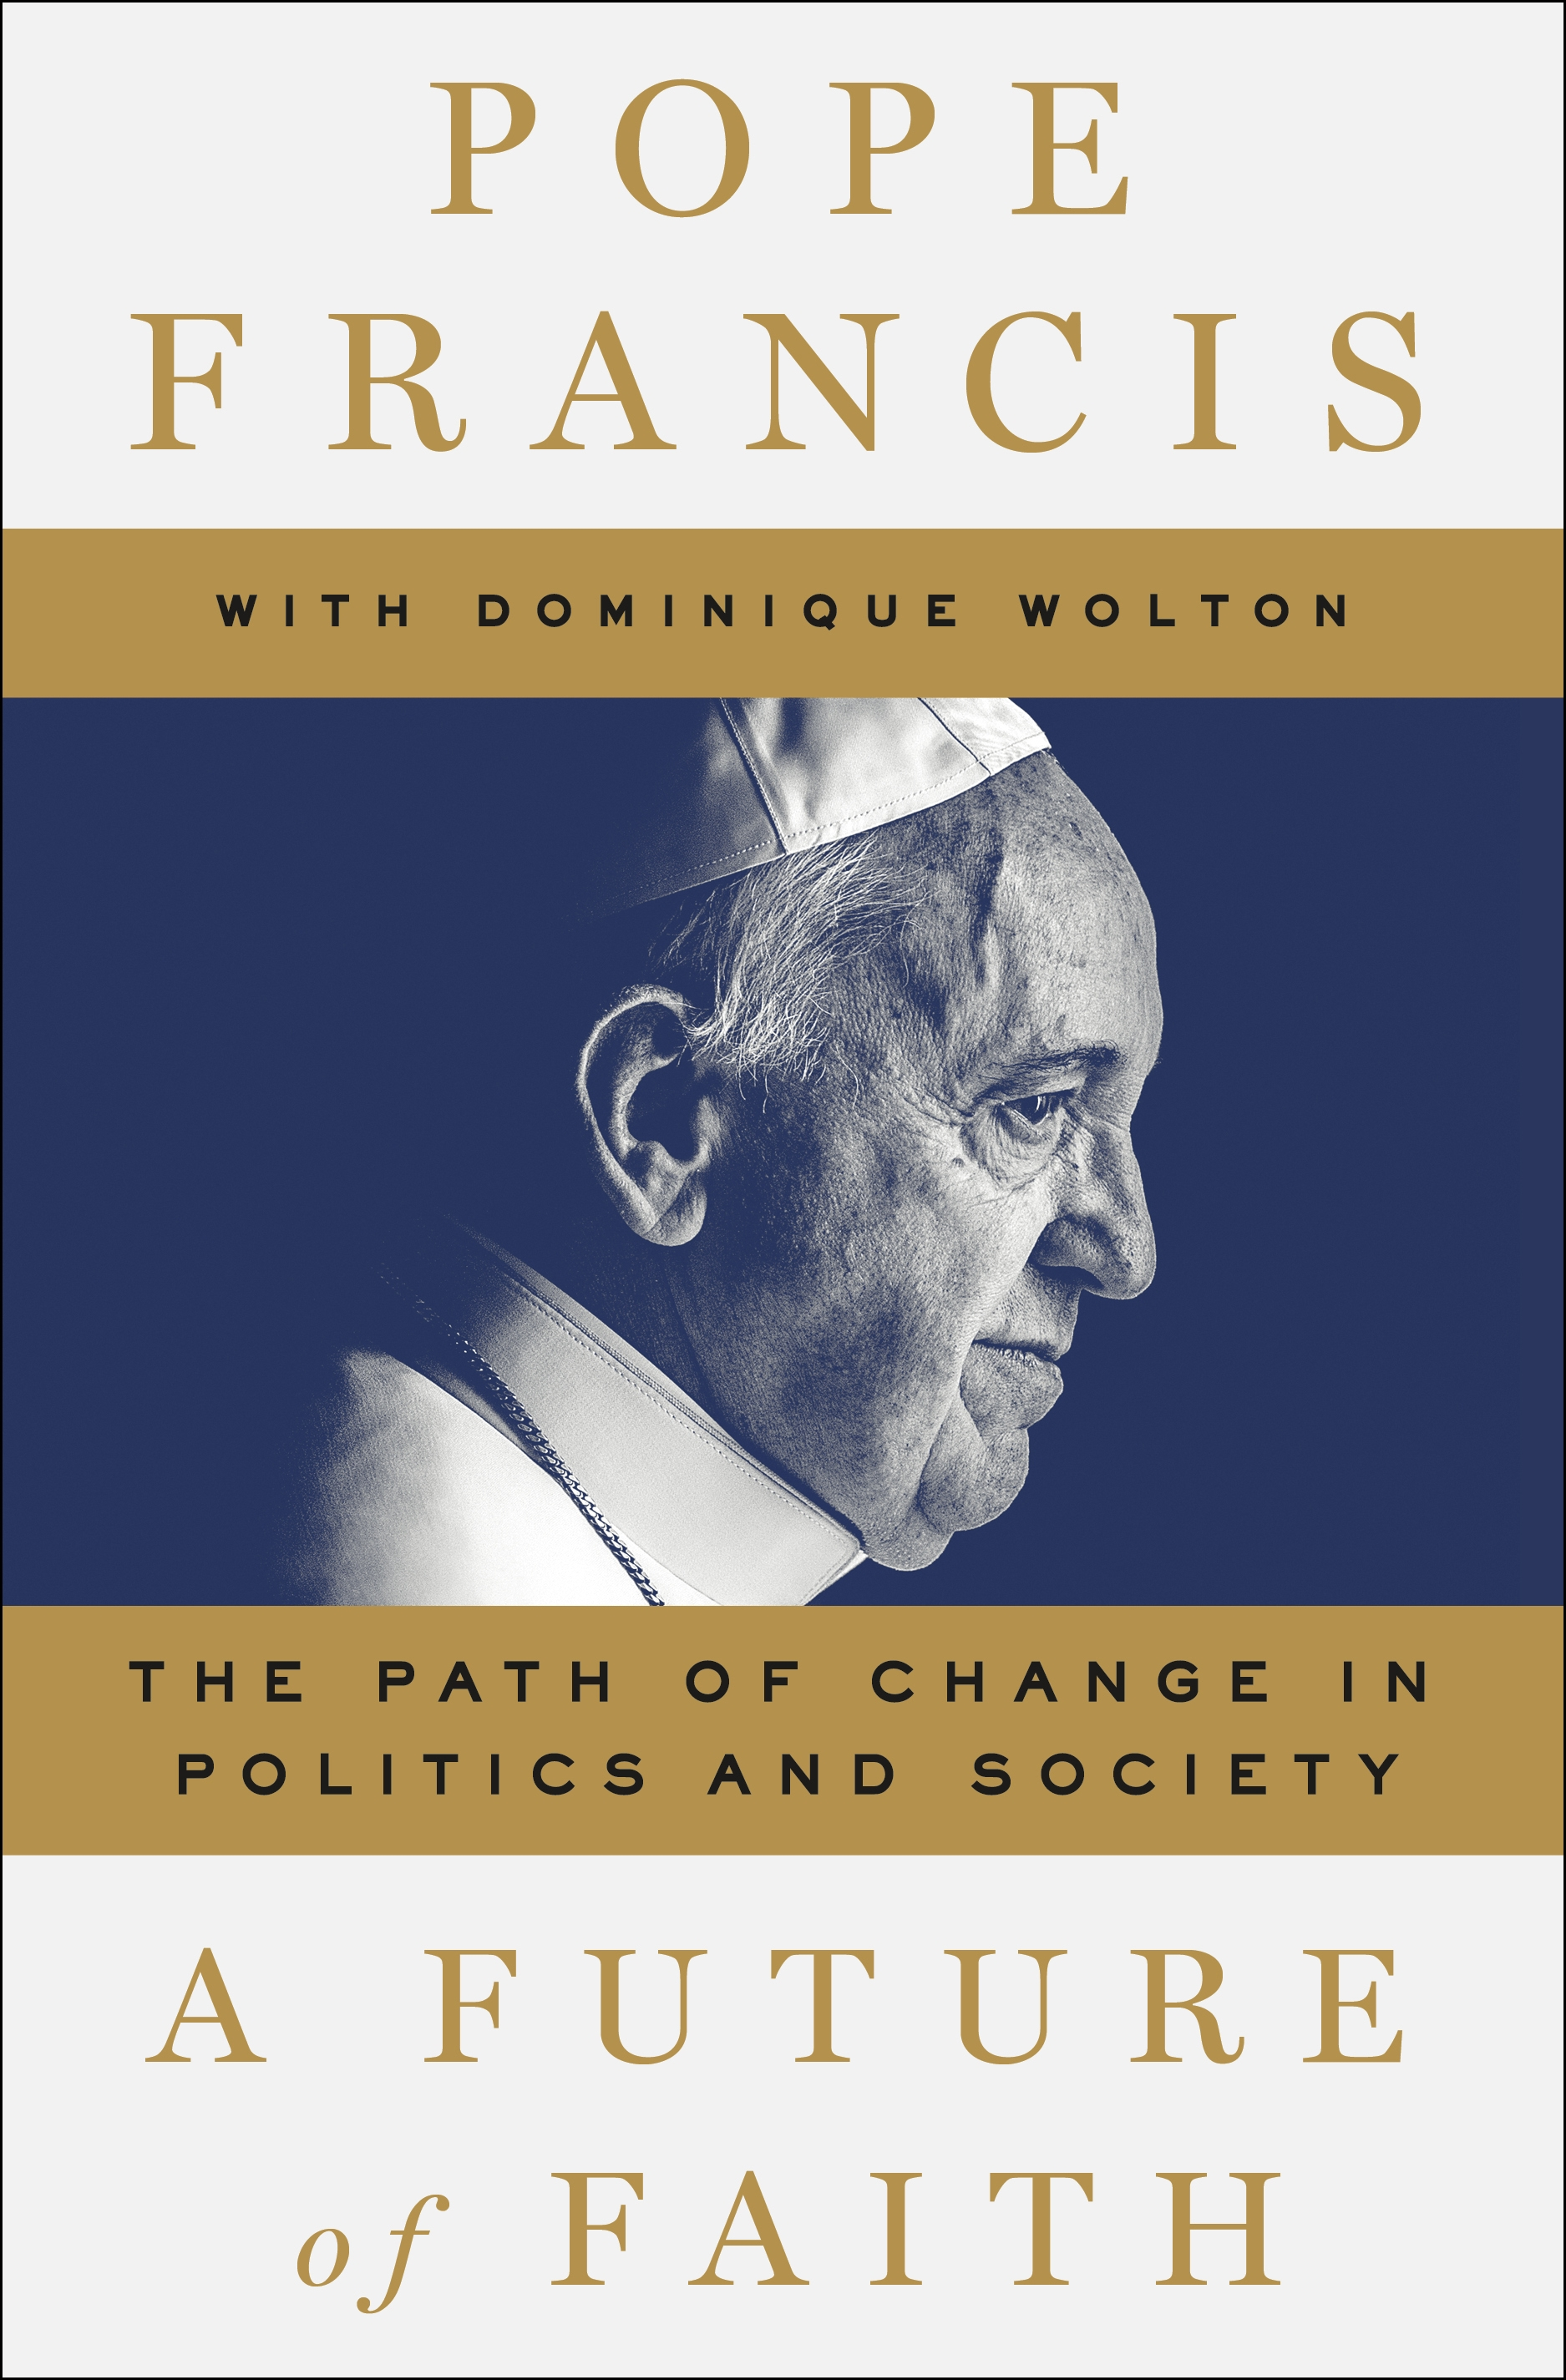 A future of faith the path of change in politics and society cover image